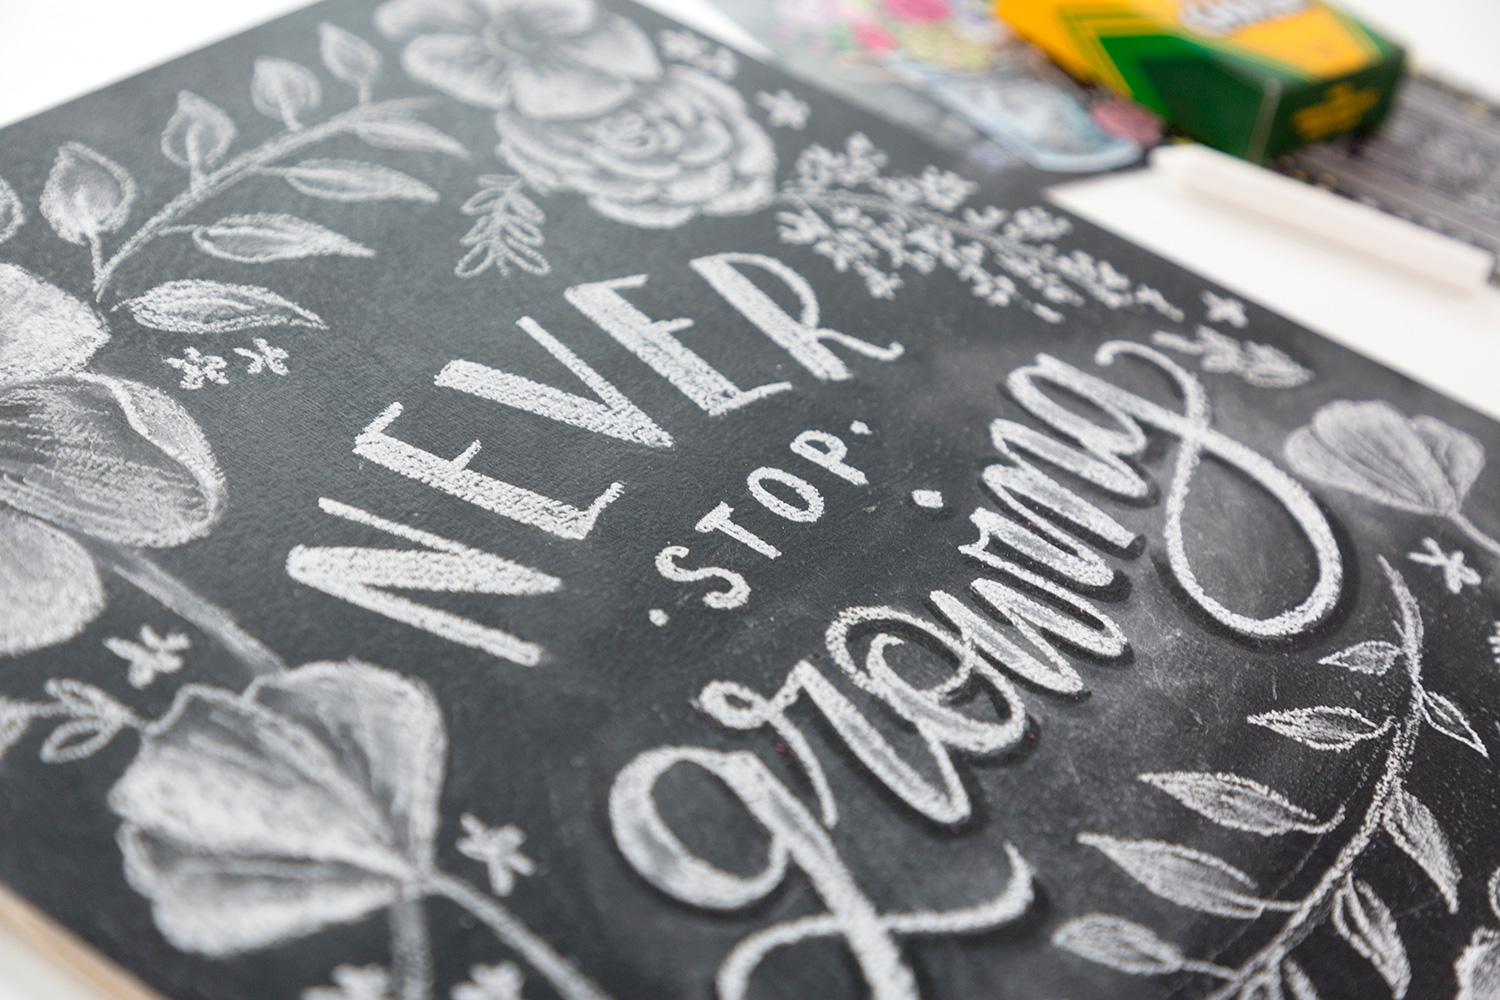 Intro to Chalk Illustration Online Class with Valerie McKeehan! Learn how to draw beautiful flowers in chalk and make a sign!